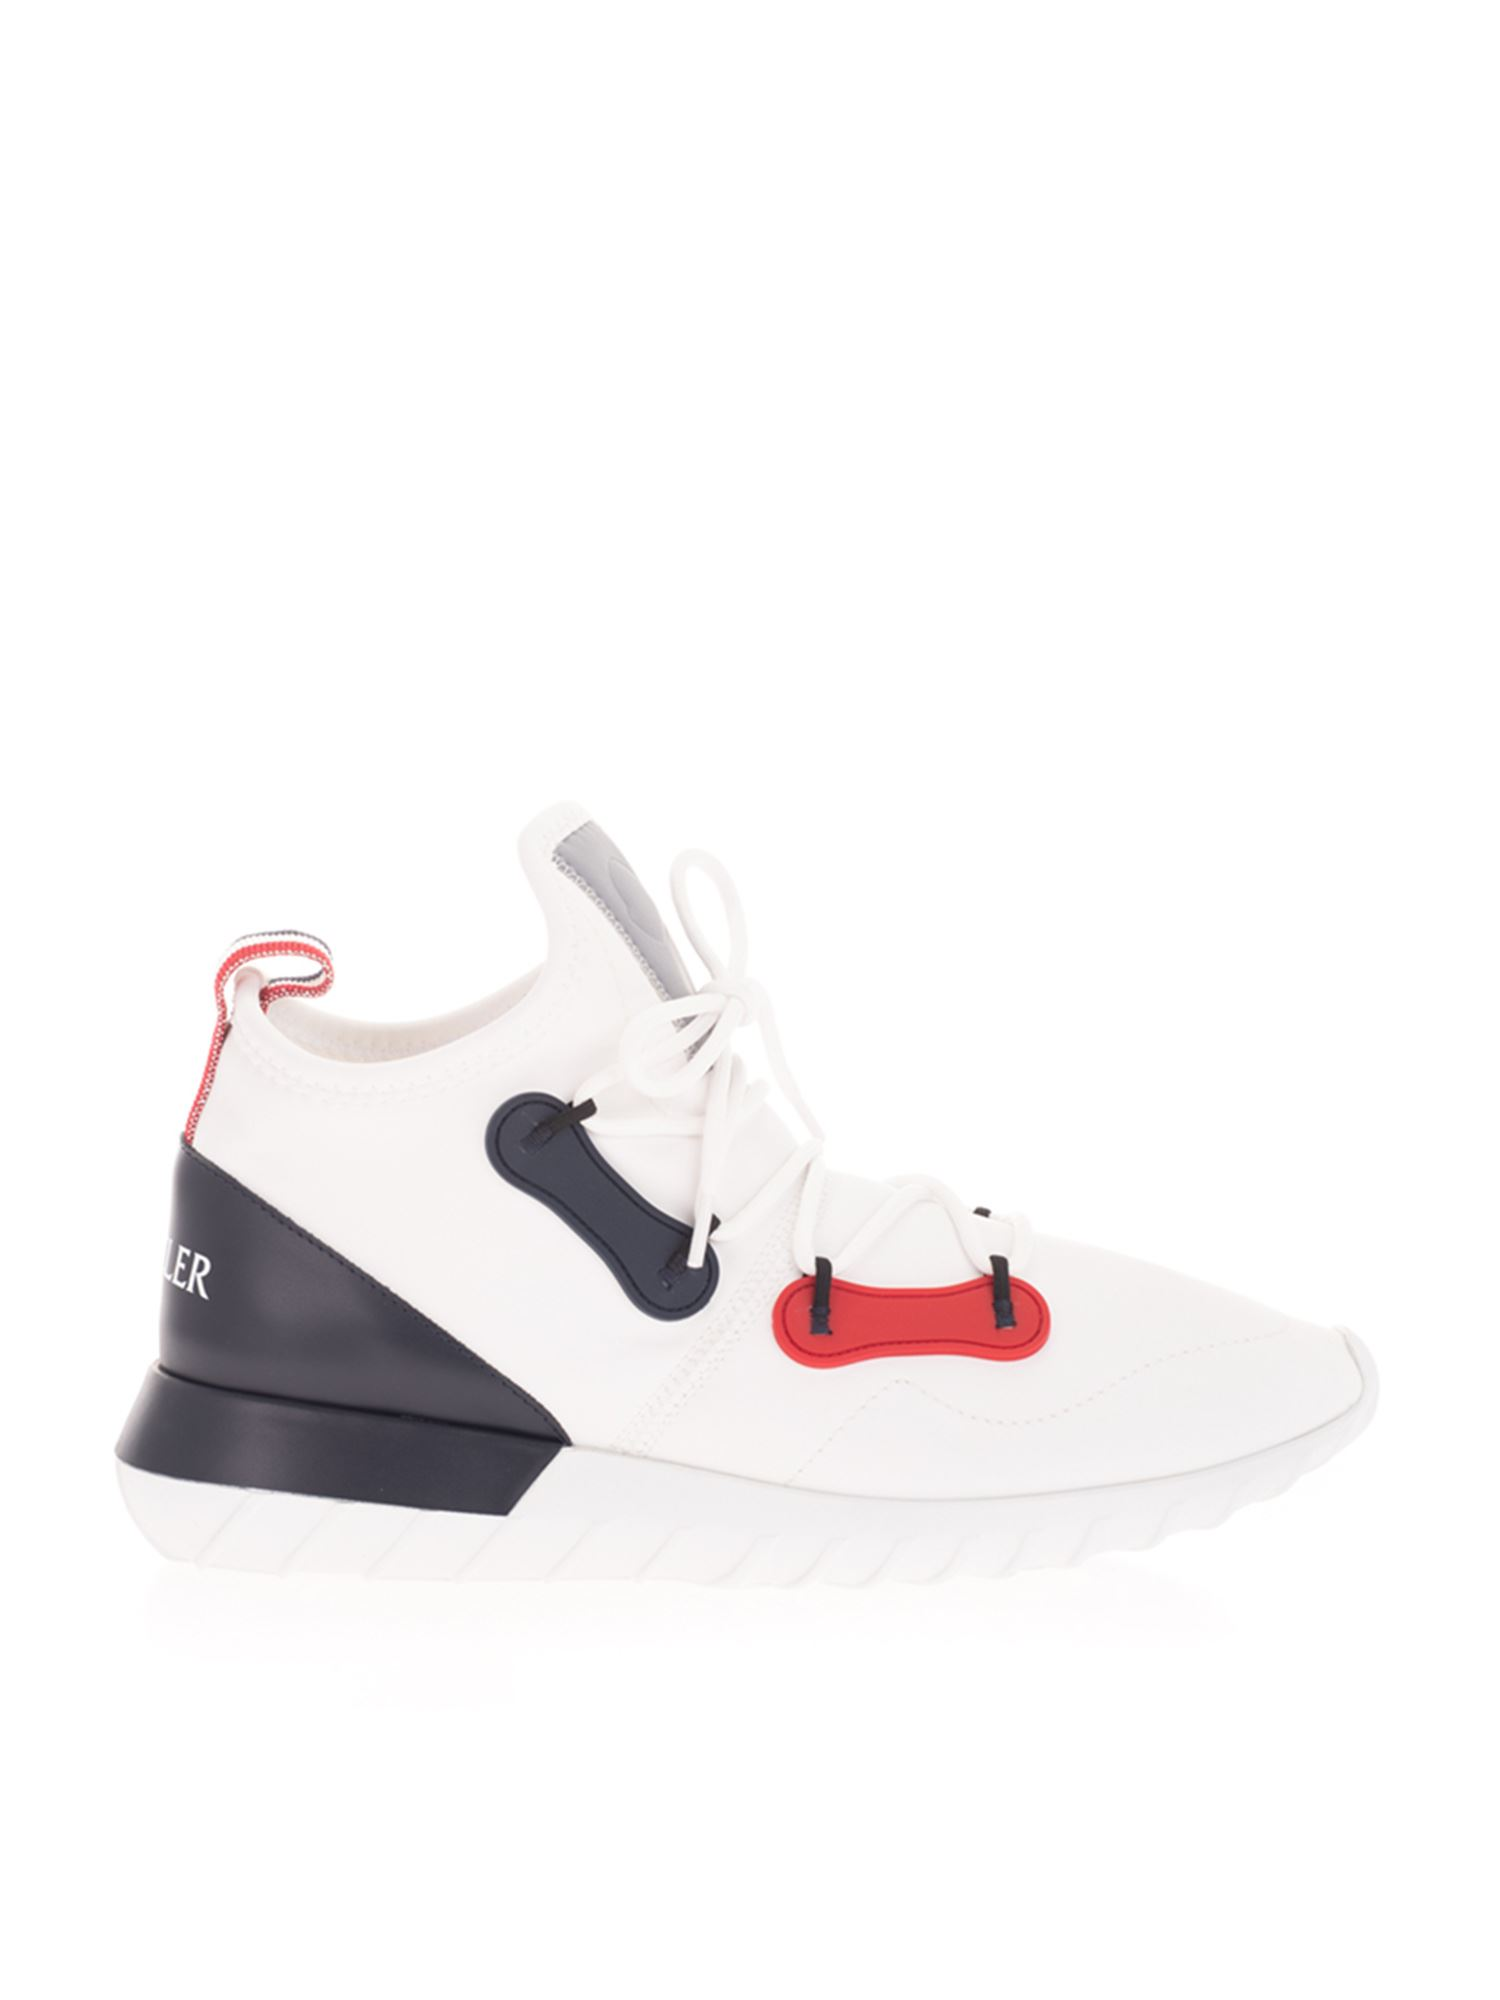 Moncler CONTRASTING PANELS SNEAKERS IN WHITE